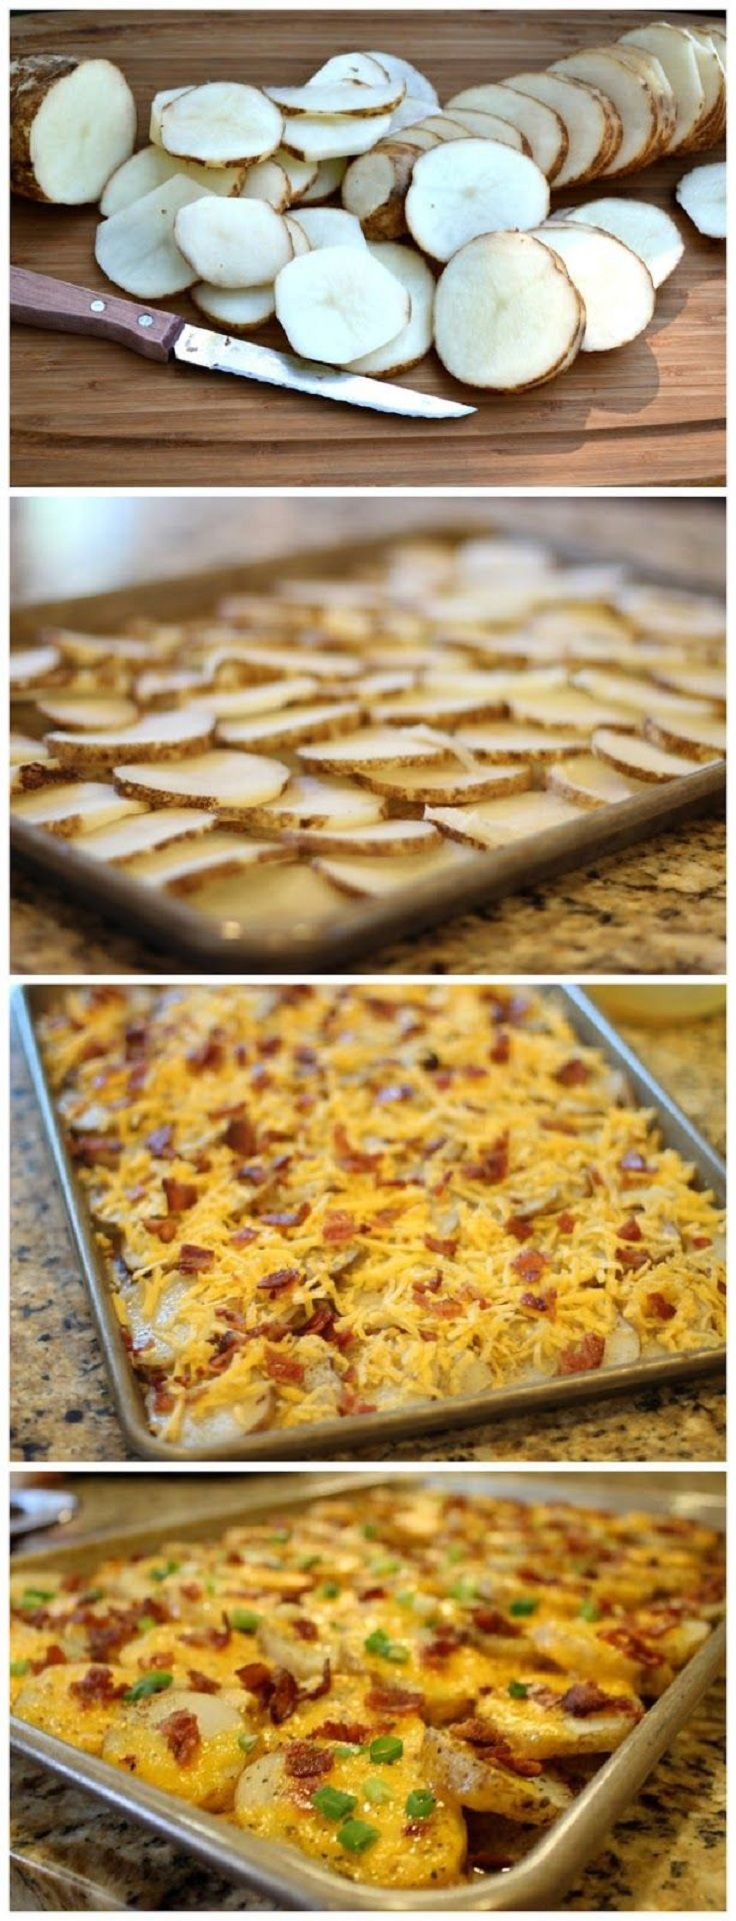 Cheesy Bacon Potato Bites - Boil sliced potatoes for 5 minutes, layer on sprayed sheet, top with cheese and bacon, bake at 375 for 15 minutes, top with green onion.